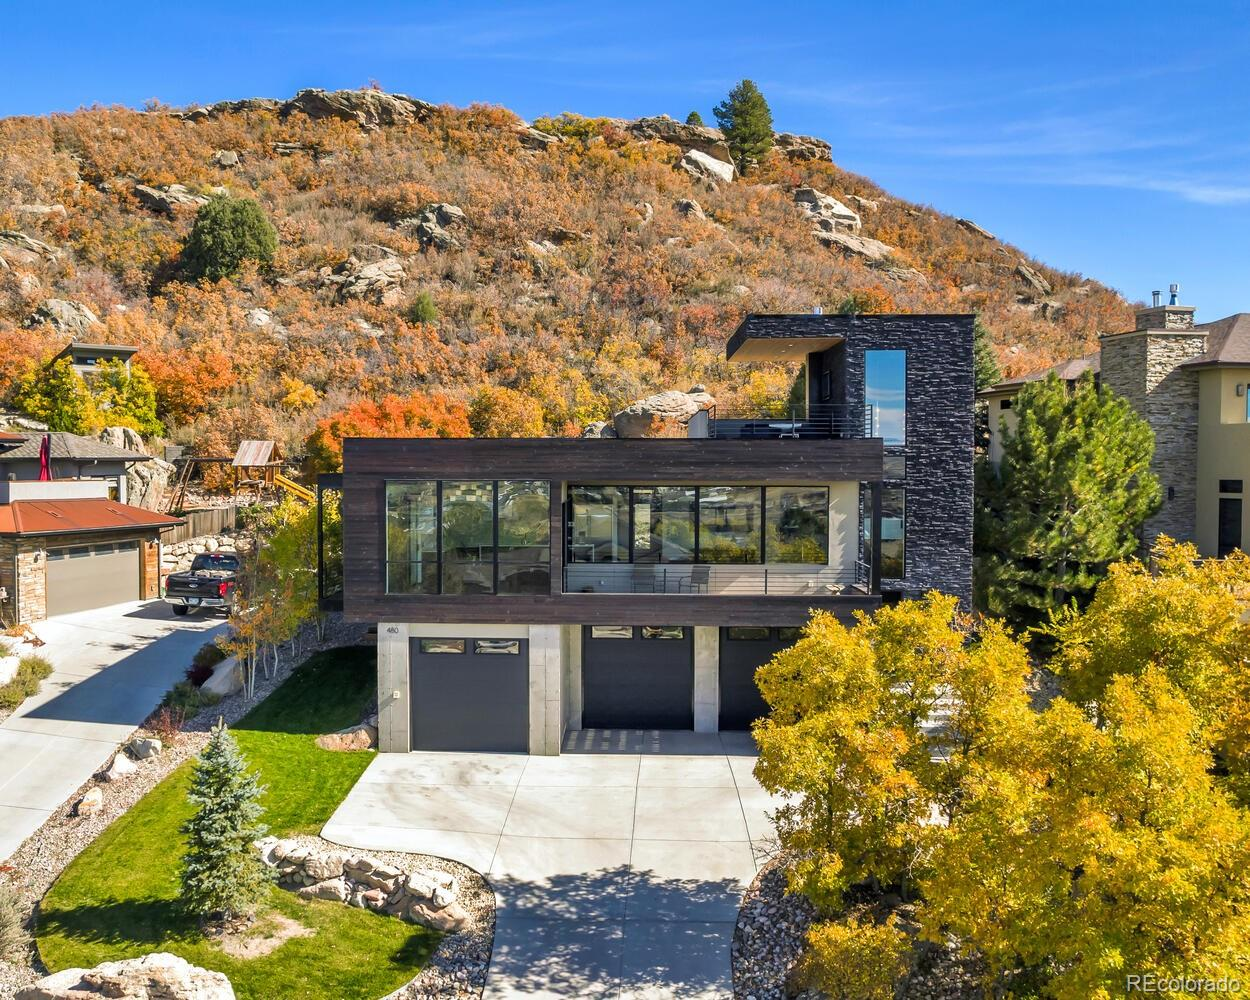 """Whether looking through the floor-to-ceiling windows from the heart of the home or sitting on one of the three outside decks, you will be in awe of the breathtaking views that span over downtown Castle Rock - from Pikes Peak to Mt. Evans and perfectly framed by the town's namesake """"The Rock"""". The commanding exterior compliments the views with this masterfully designed modern 3 bed/ 2 bath luxury masterpiece. Need additional bed/bath? We have a solution for that.  The stunning custom-built steel staircase paired beautifully with hardwood flooring welcomes you into the open main floor living flooded with natural light. The Kitchen flows into the dining and family room which is complete with black stone feature fireplace wall.  The chef's kitchen is equipped with Premium Quartz Countertop, Jennair induction cooktop (it's even better than gas!), Samsung built-in microwave/oven combo featuring flex dual lower oven and steam cooking and commercial grade hood that is perfectly accented by full glass wall tile backsplash.   The master suite features oversized custom master shower and large master closet. Backing to a private """"mountain open space"""" enjoy the privacy of the rooftop deck or back patio. All 3 decks feature IPA Brazilian hardwood floor and cedar ceilings. Additional perks include 3 car oversized heated garage with 9ft tall garage doors, laundry room with """"Dogs Quarters"""",  dedicated dog grooming station and home theater.   Nestled into an amazing neighborhood this property is walking distance to one-of-a-kind restaurants like Tribe, charming shops like The Barn, and community events at Festival Park in the historic downtown. See Supplements for additional details."""